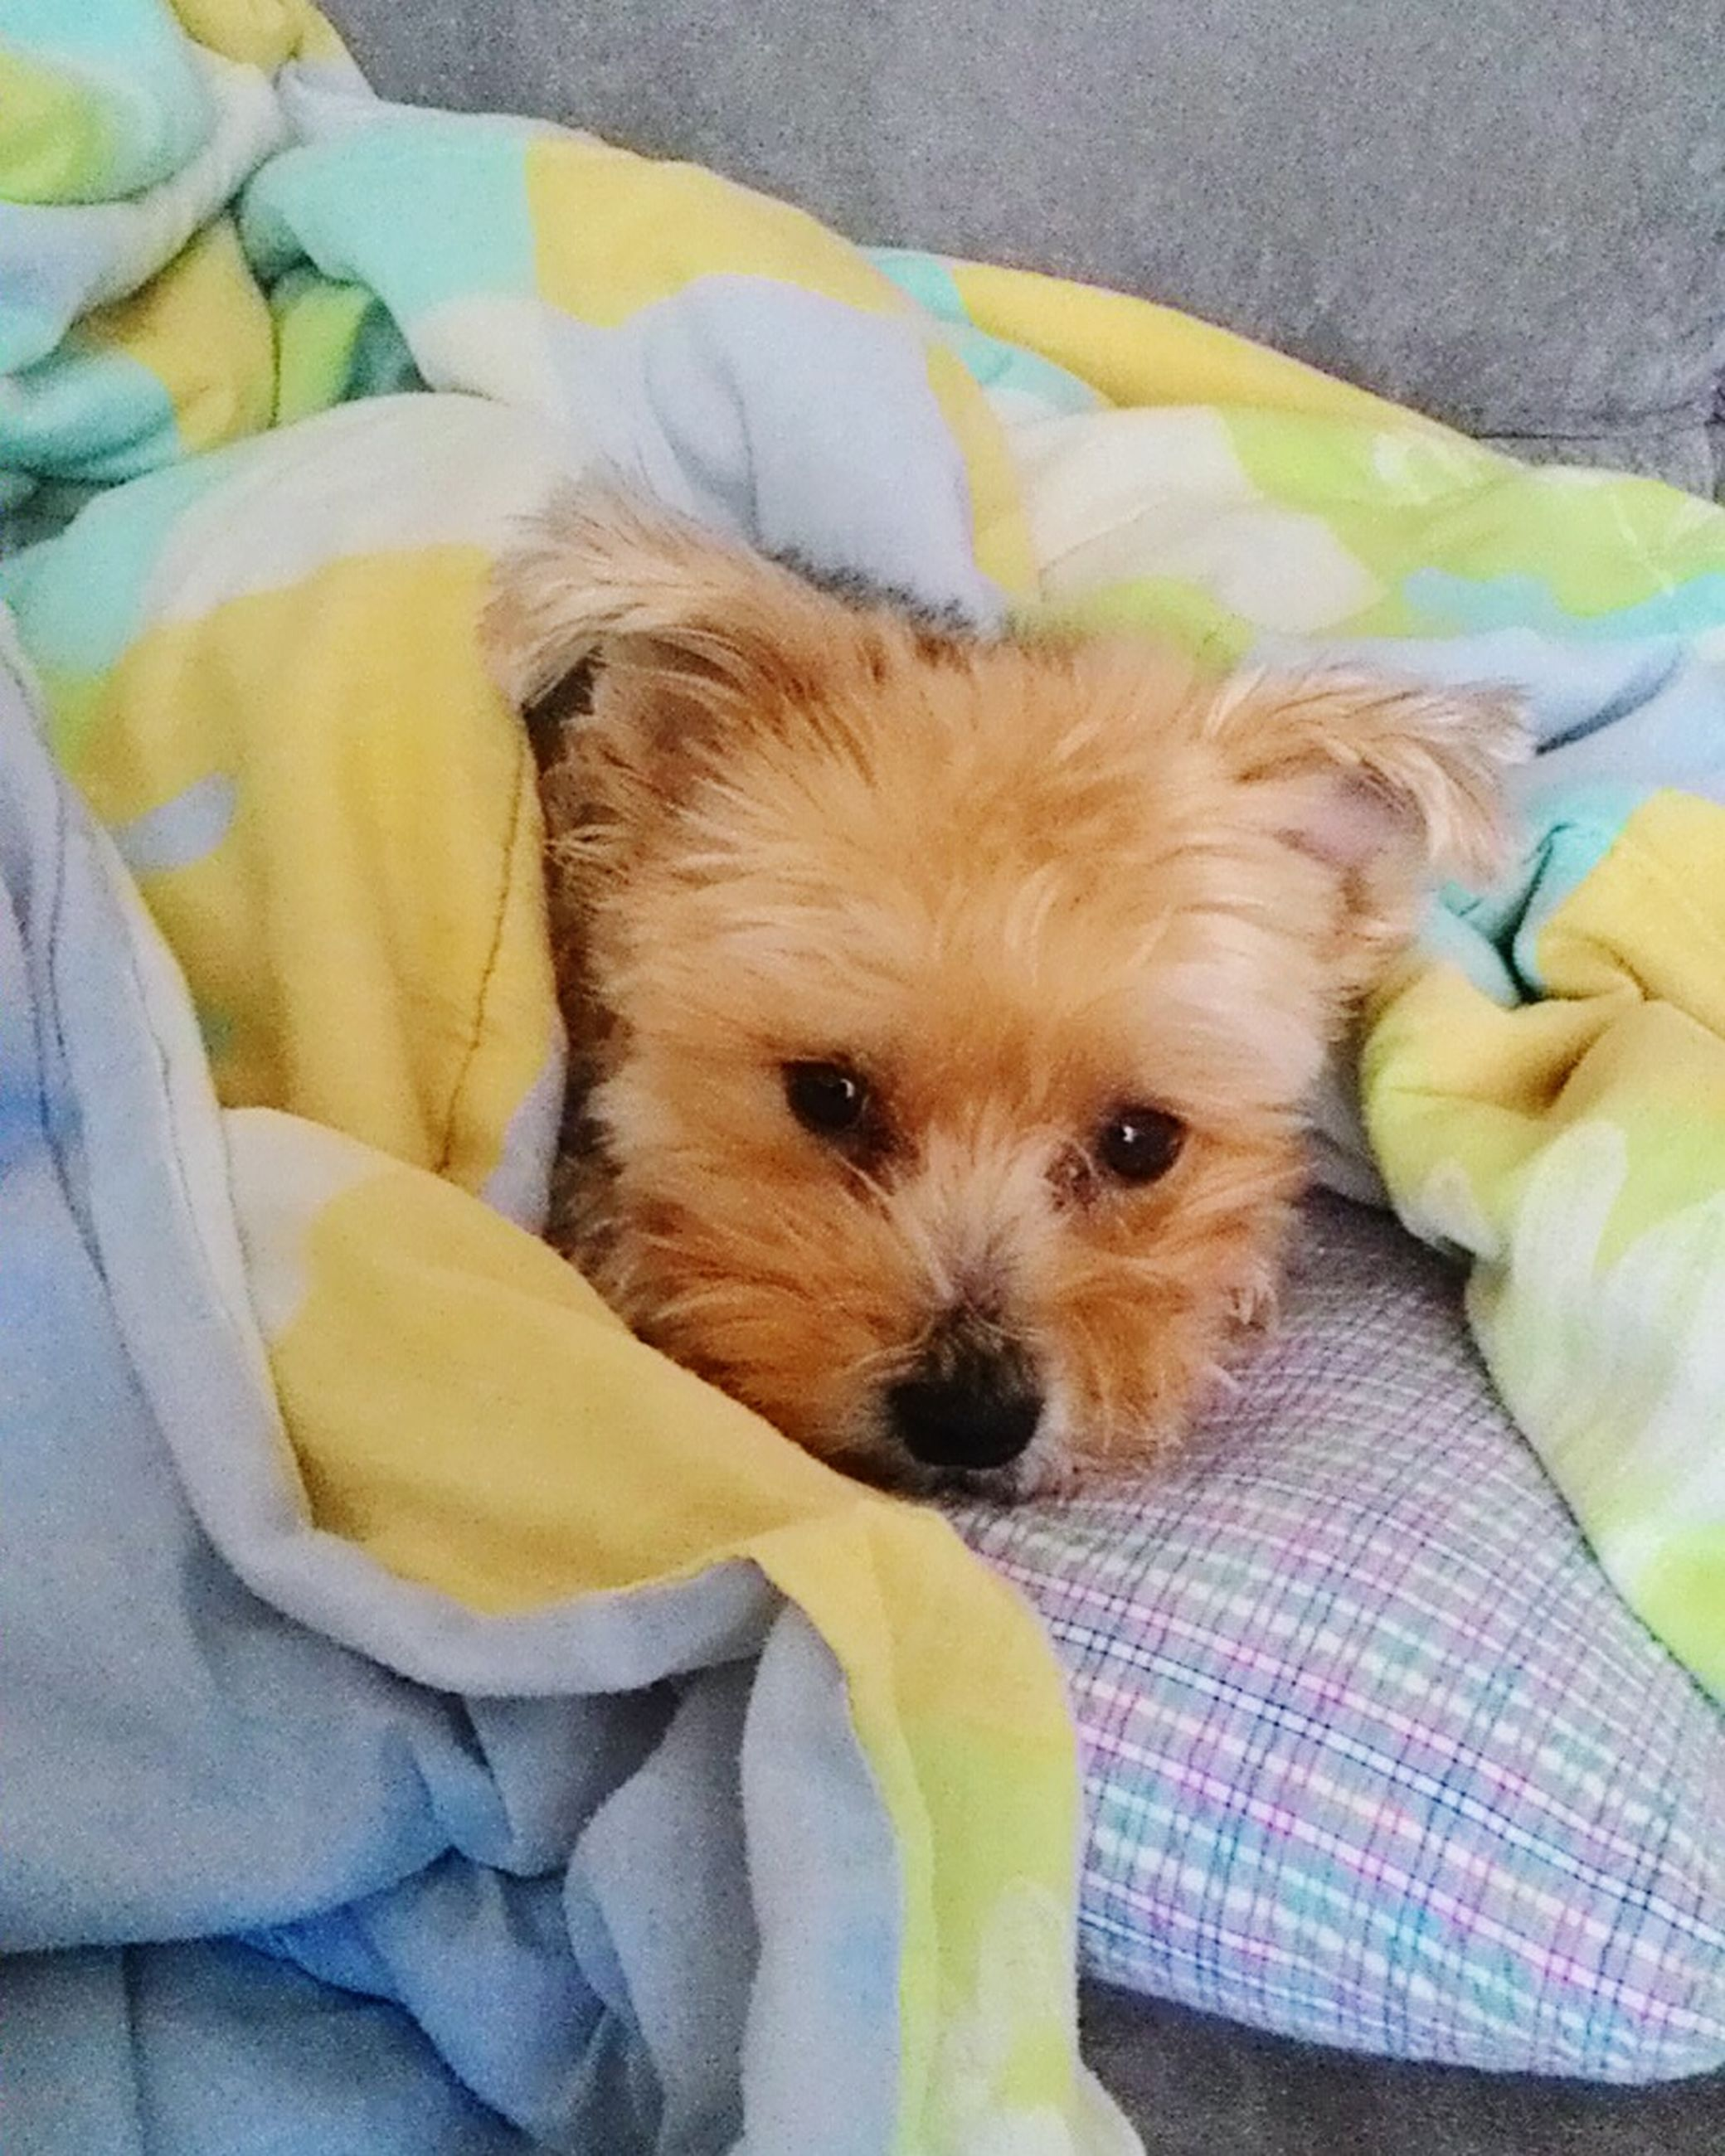 indoors, pets, domestic animals, bed, dog, animal themes, relaxation, one animal, mammal, resting, blanket, high angle view, sofa, lying down, portrait, close-up, sheet, home interior, looking at camera, comfortable